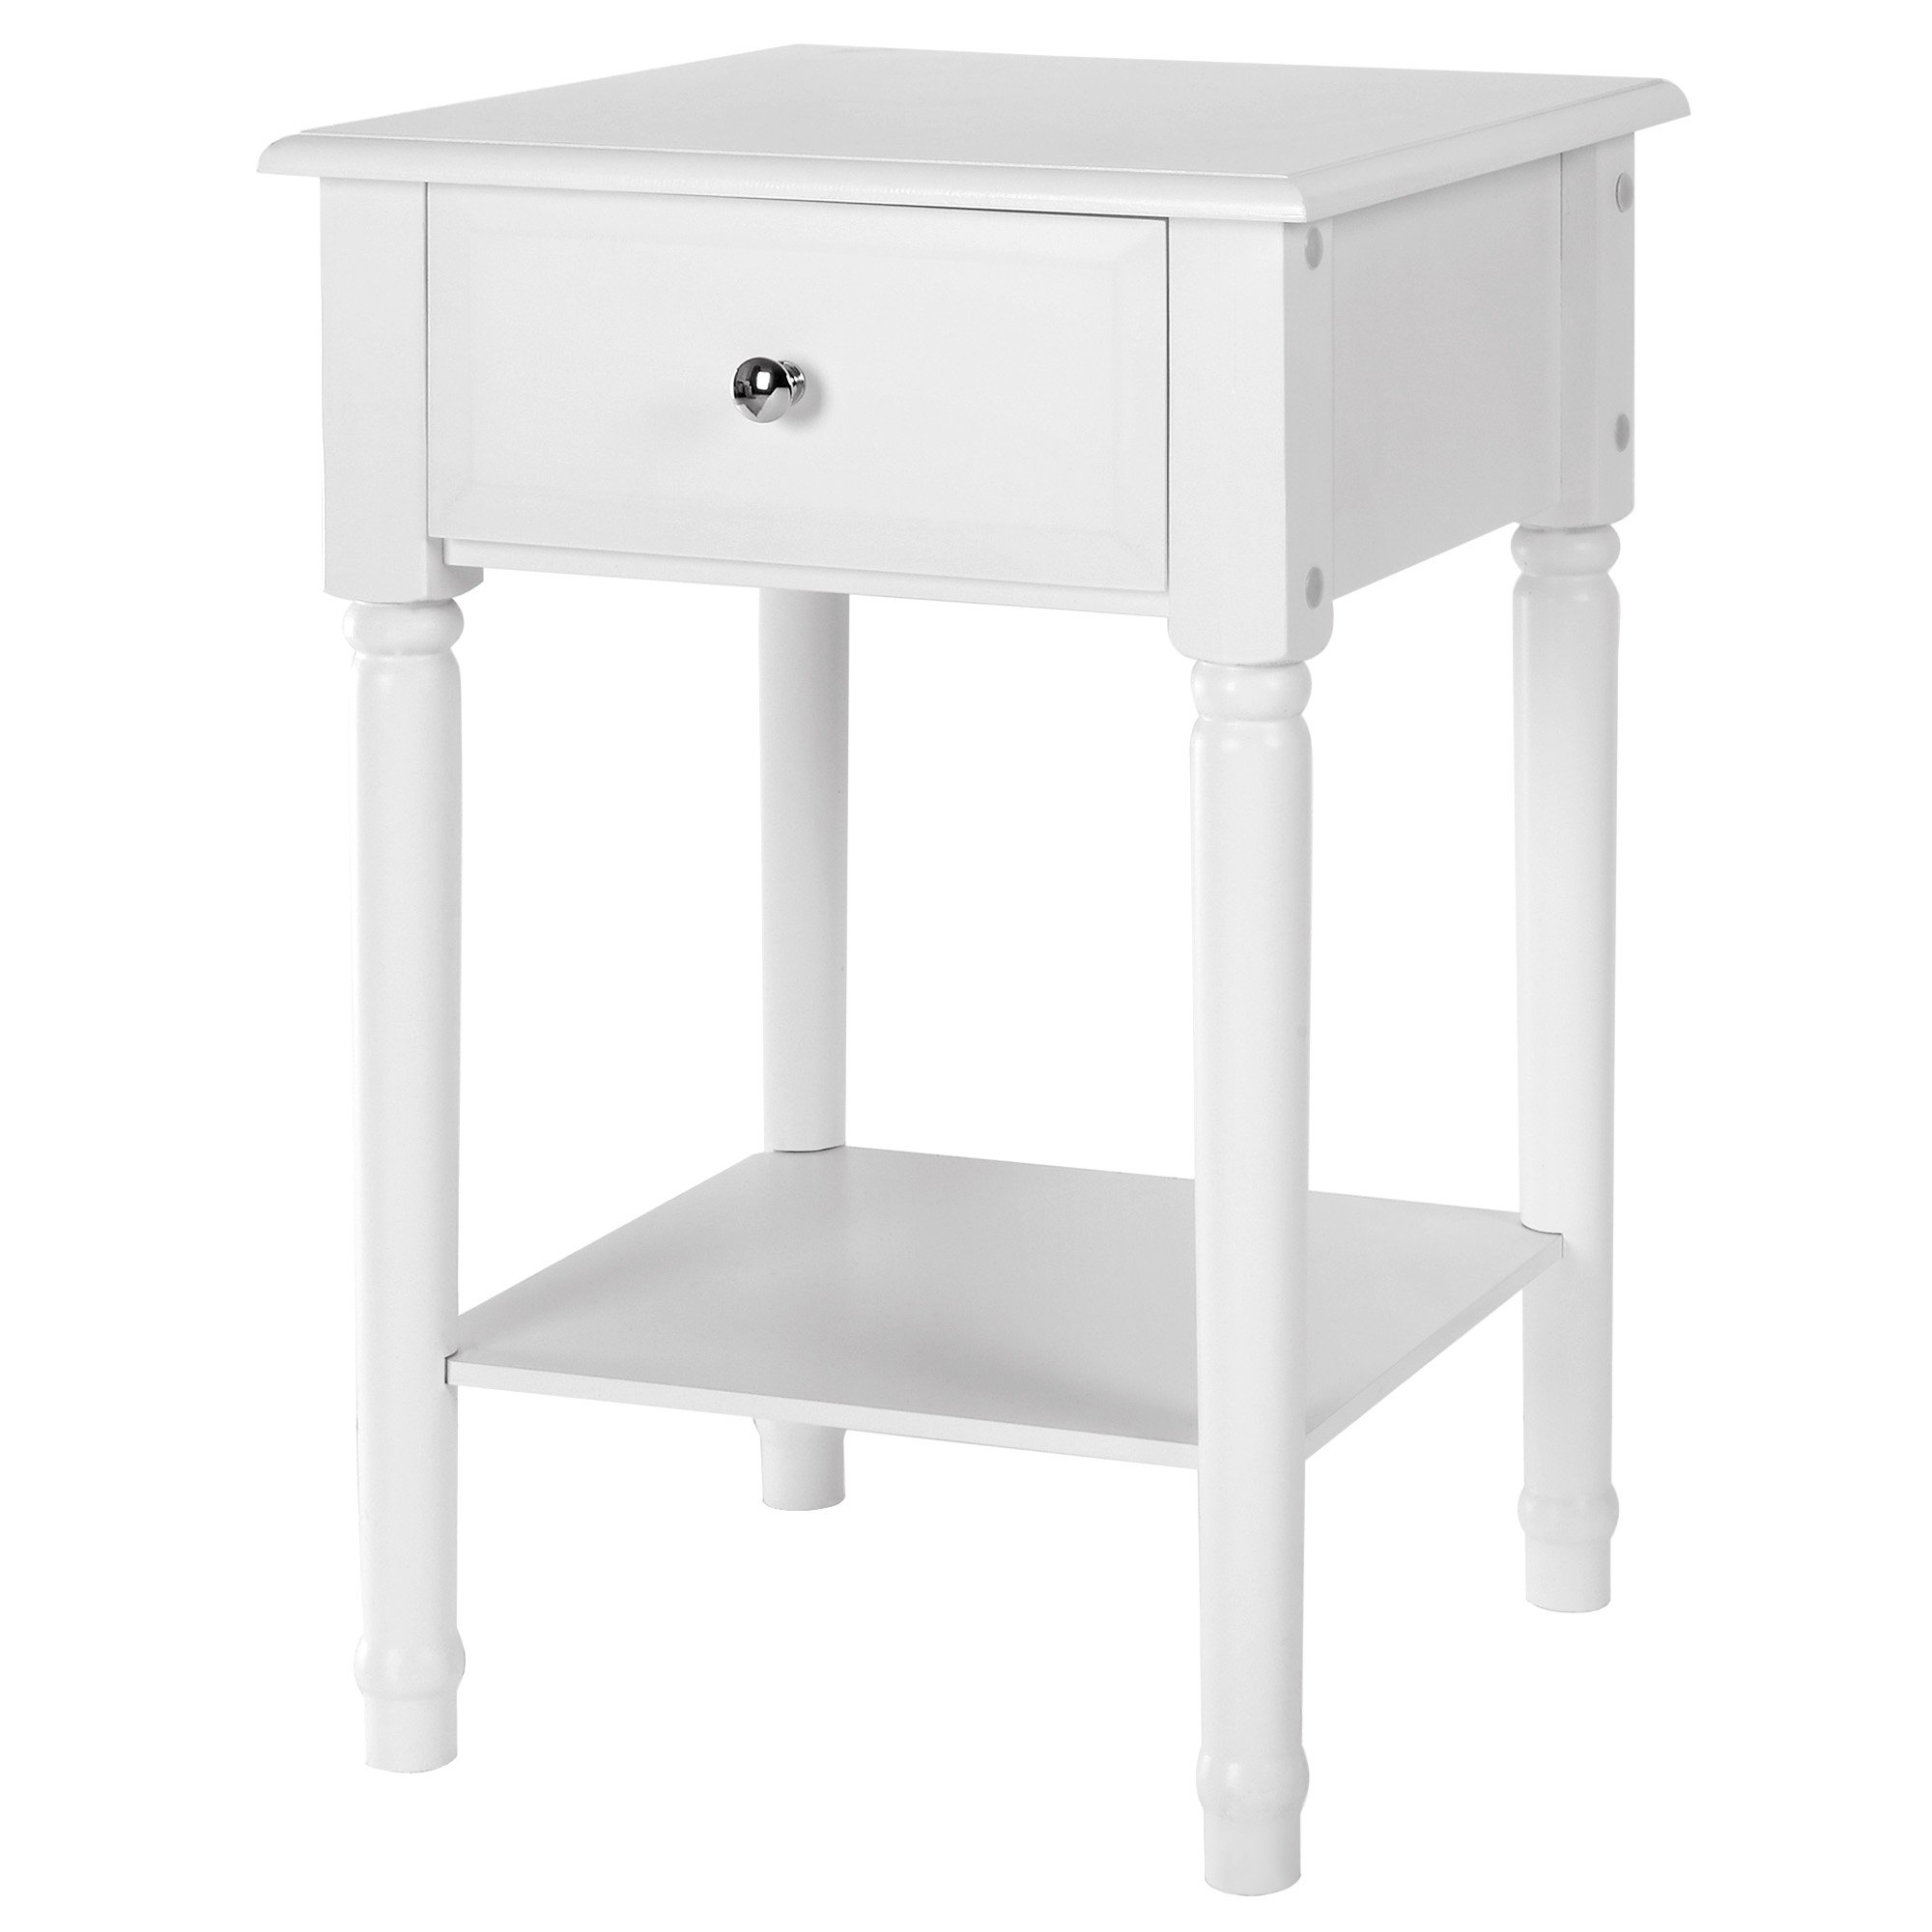 SONGMICS Sofa End Side Table with Solid Pine Wood Legs, Square Nightstand Bedside Corner Table with 1 Sliding Drawer and Shelf for Storage White URDN07W